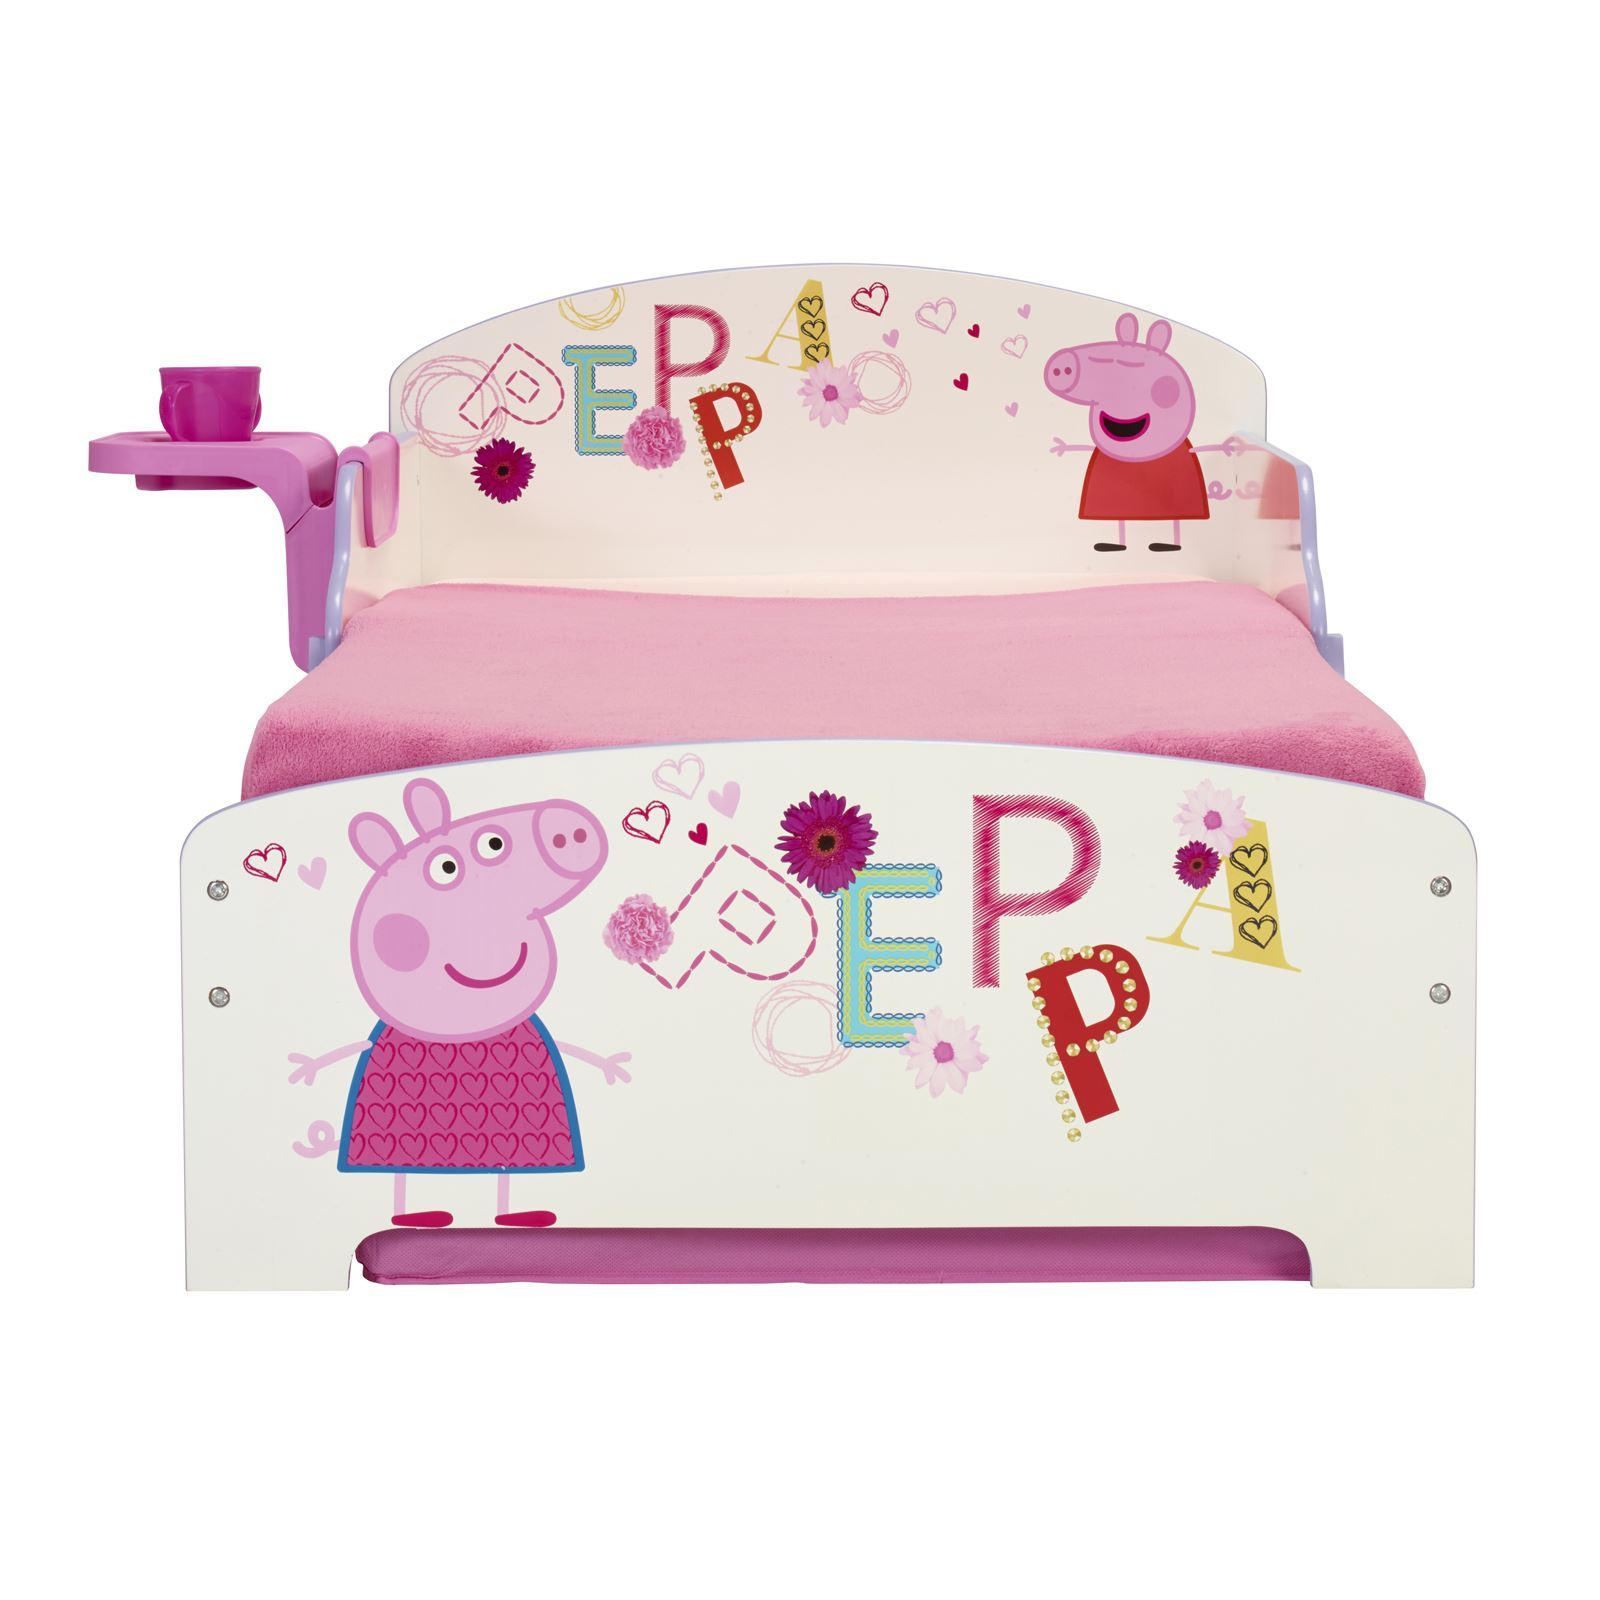 PEPPA PIG MDF TODDLER BED WITH SHELF & STORAGE + DELUXE ...